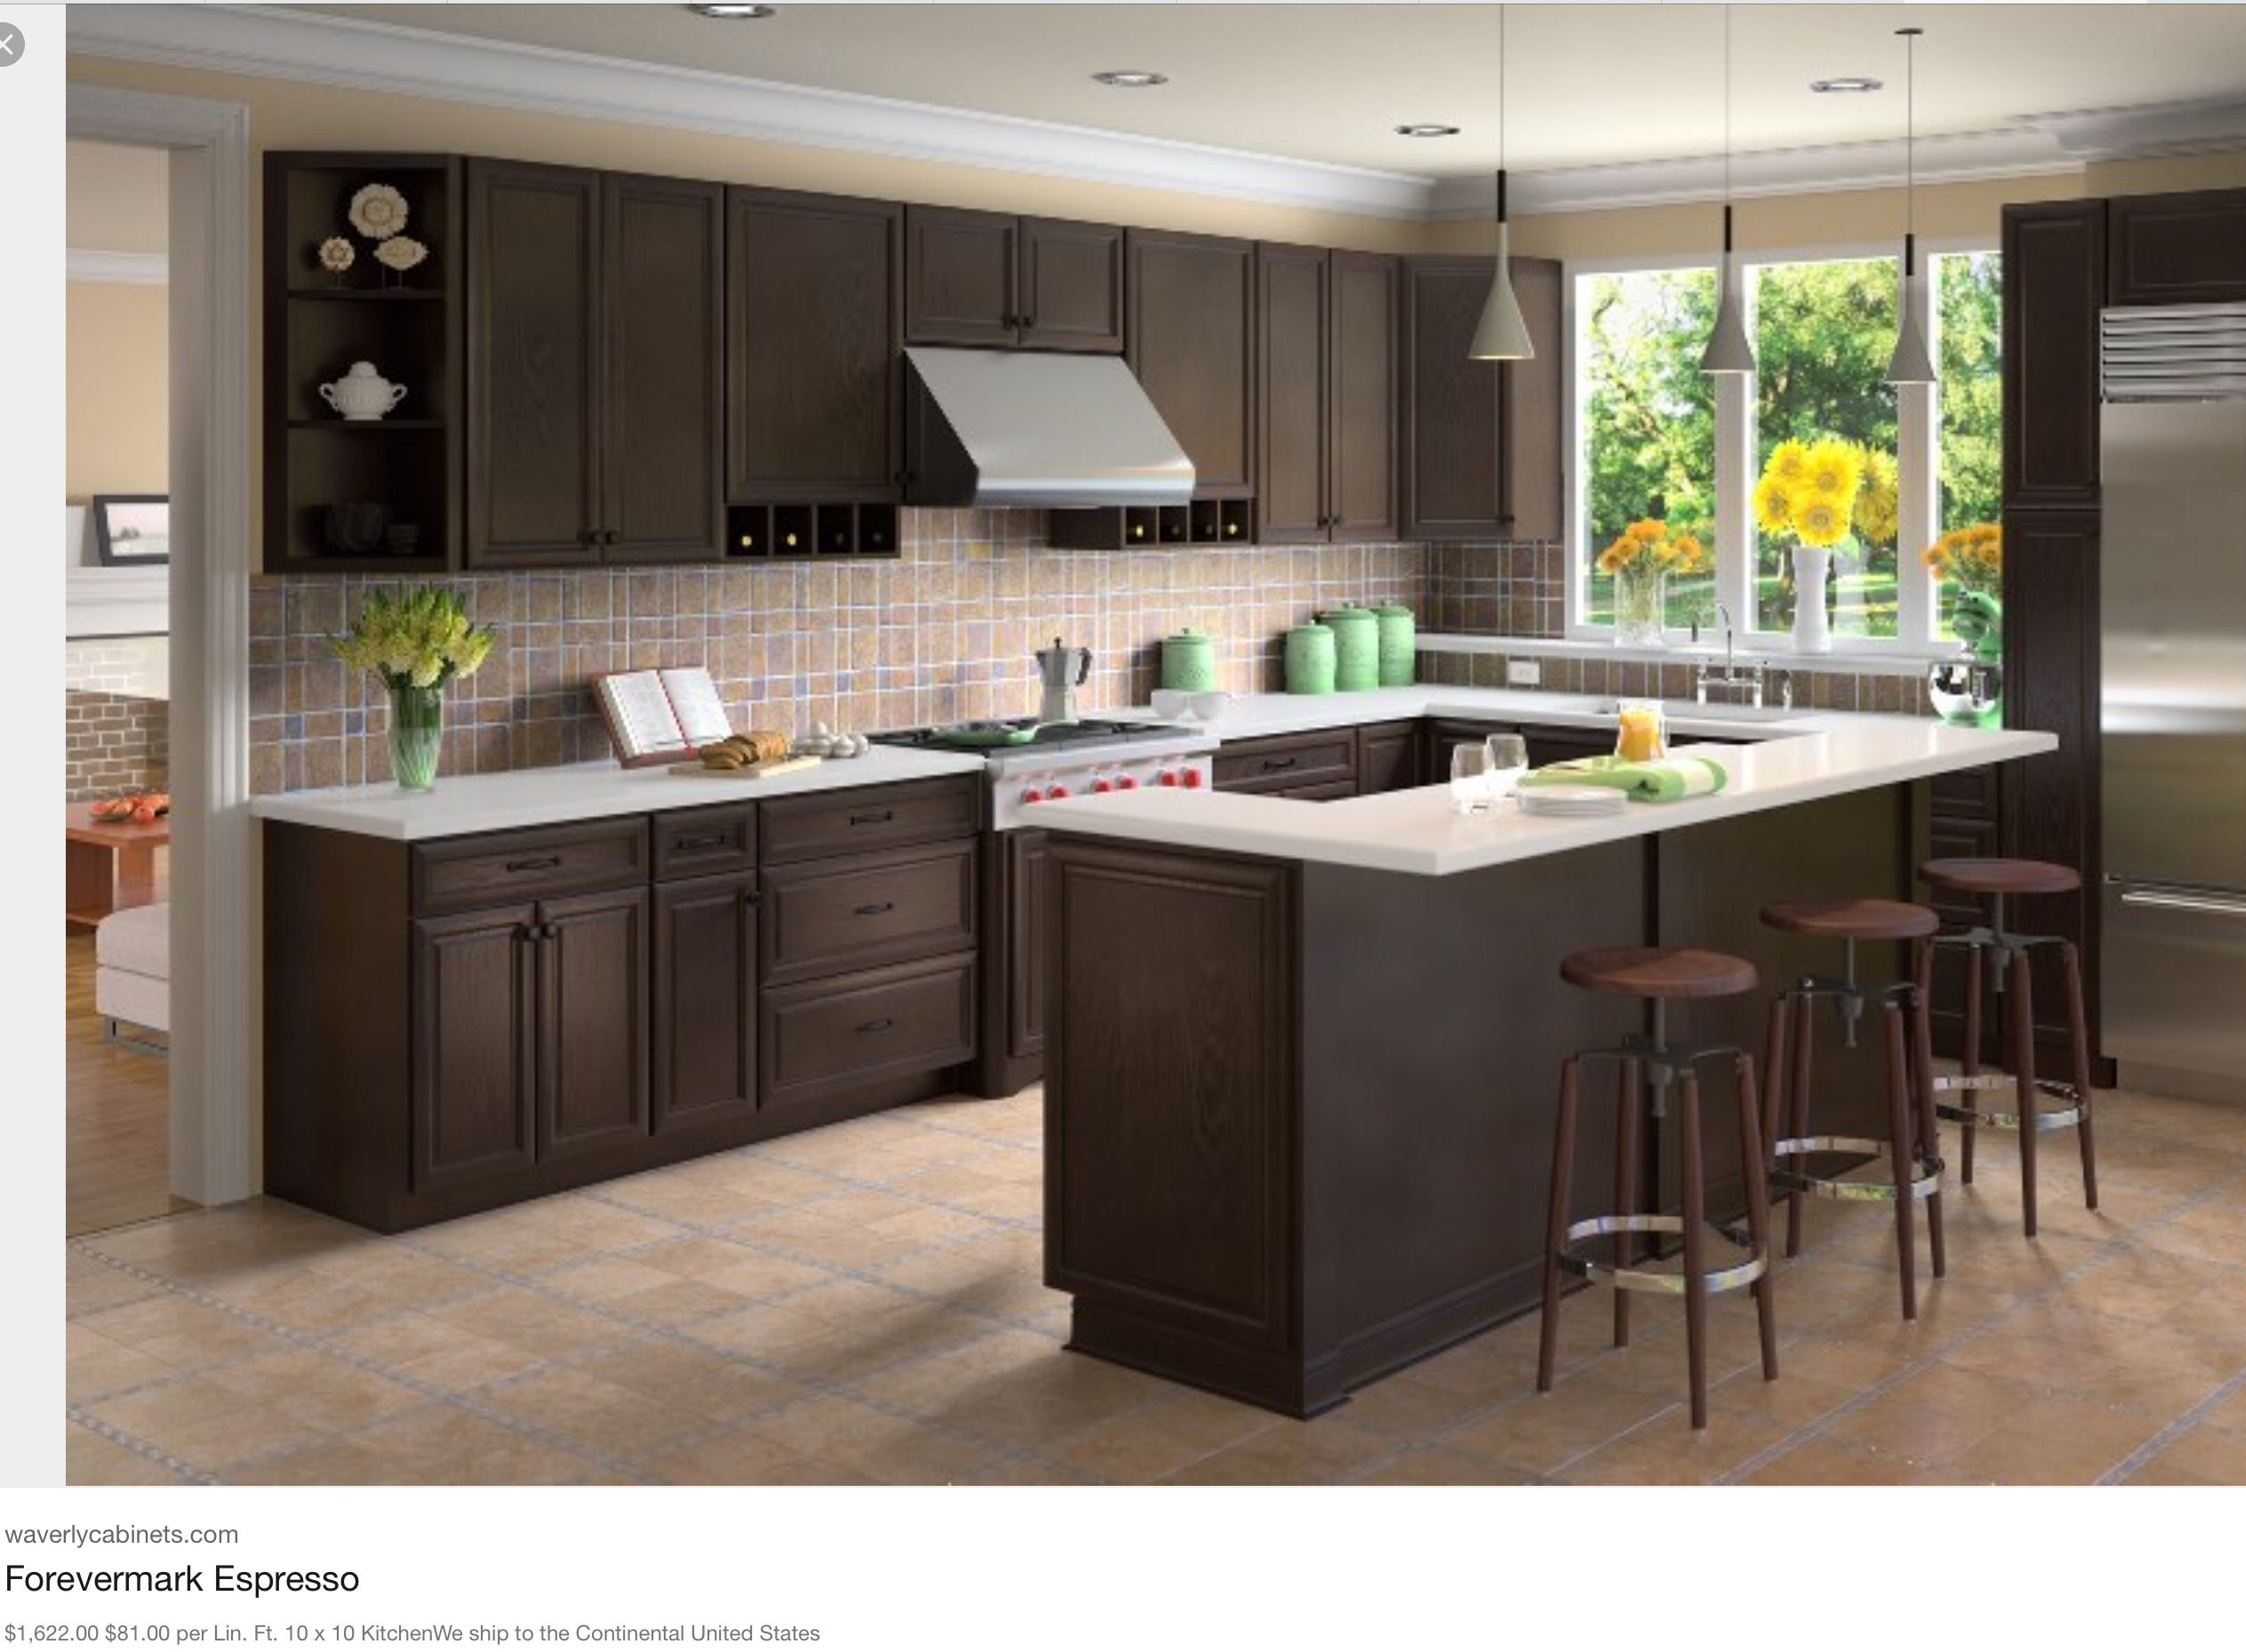 Pin By Hannah Wilder On Kitchens Cheap Kitchen Cabinets Kitchen Cabinet Trends Kitchen Cabinet Outlet